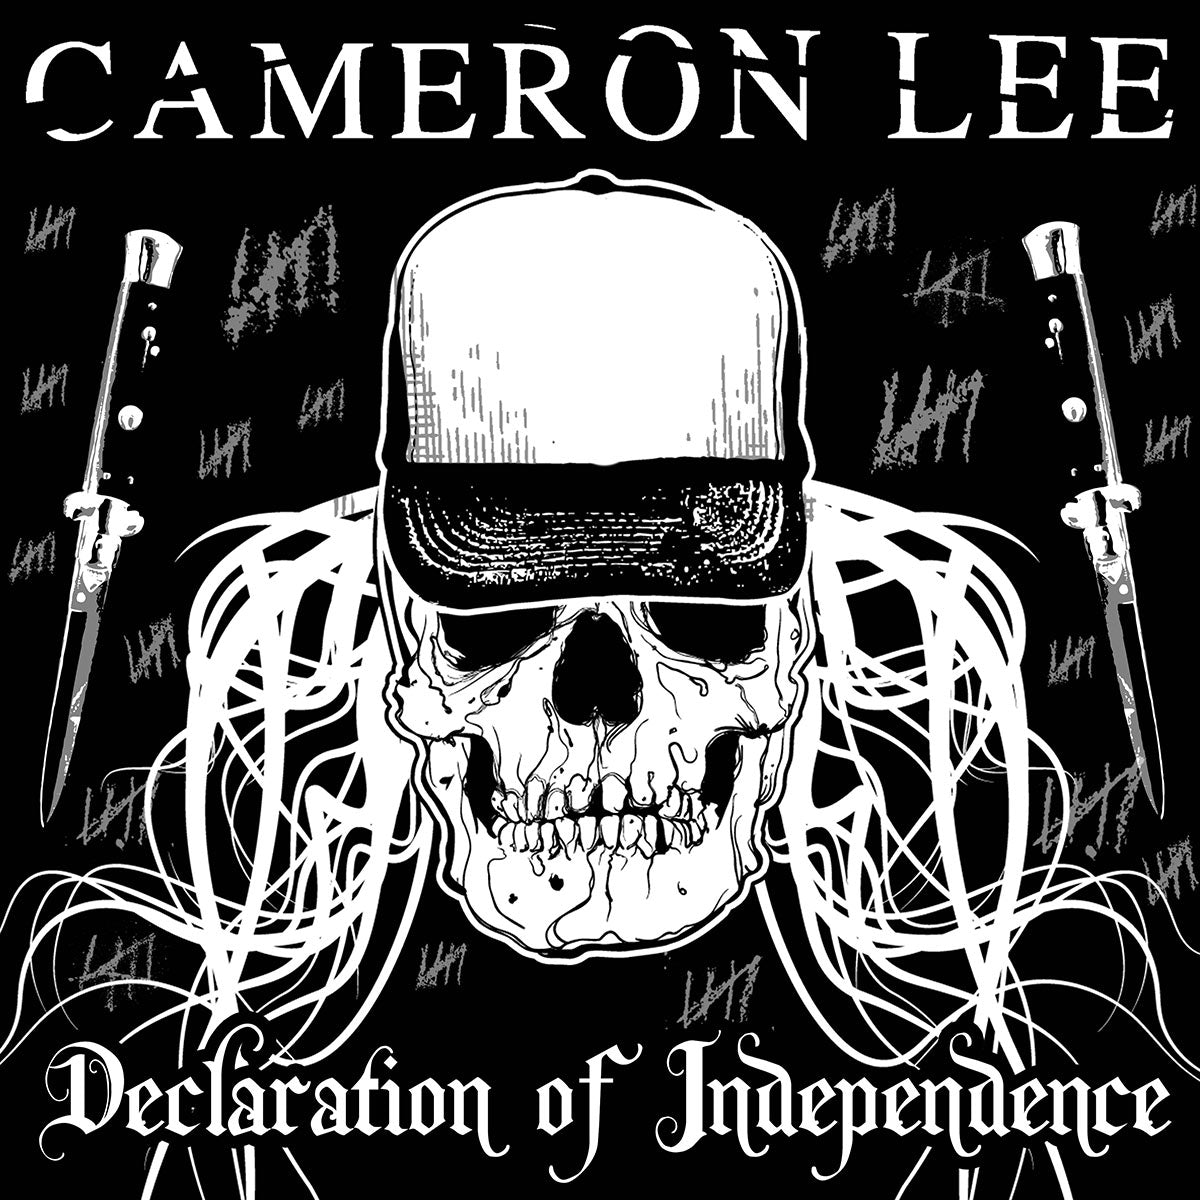 Declaration of Independence Album Art